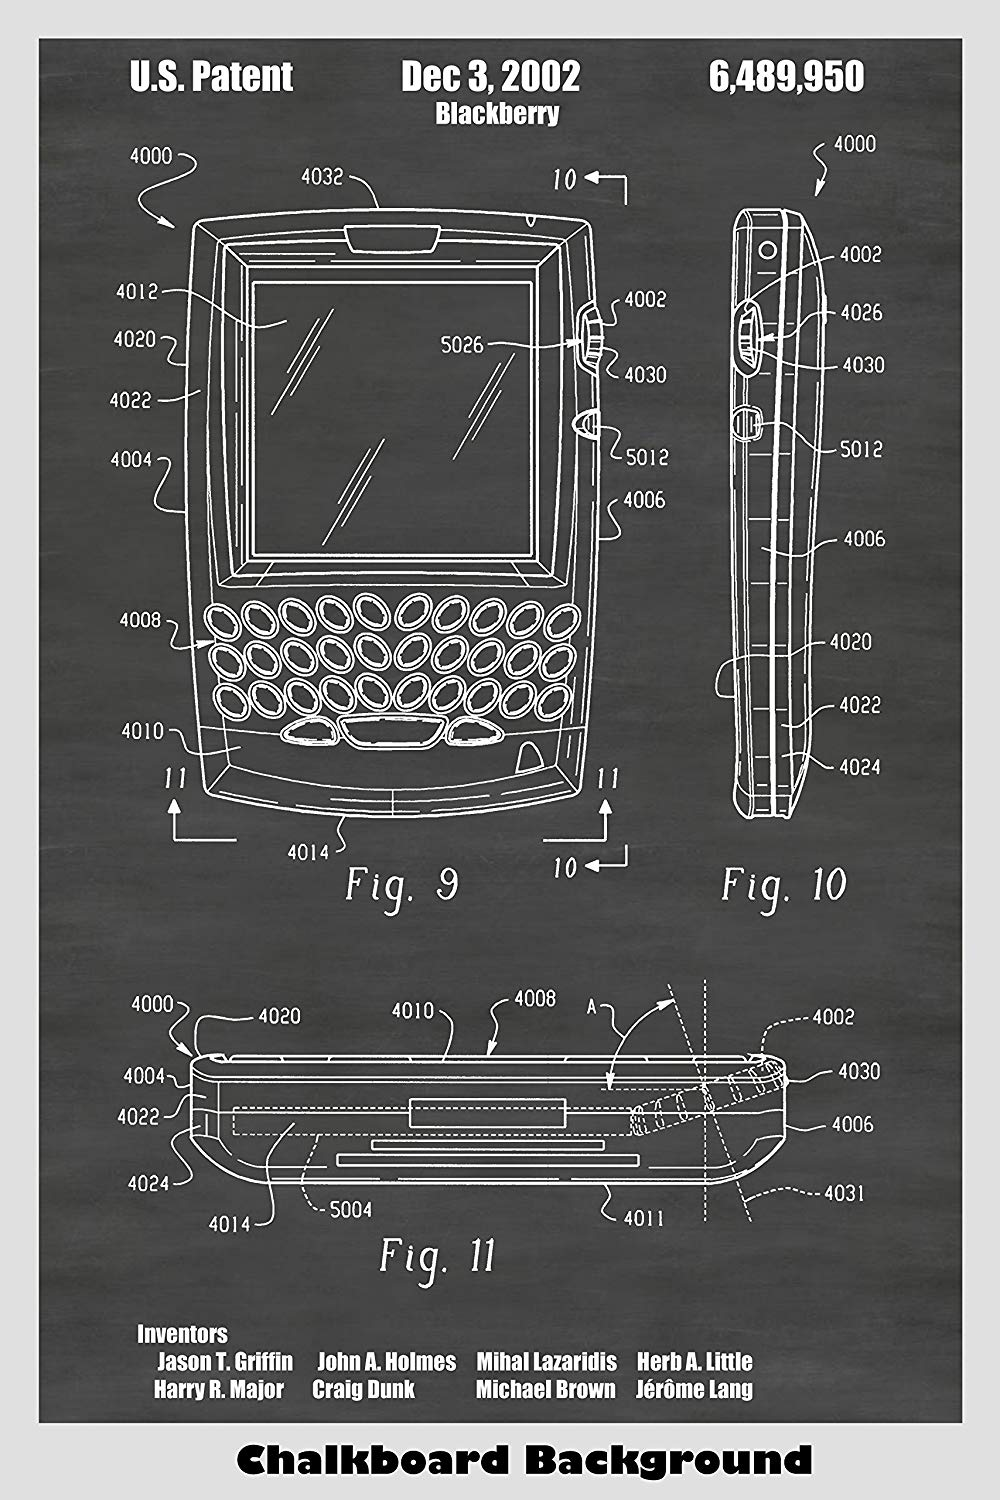 Blackberry Hand Held Electronic Device Patent